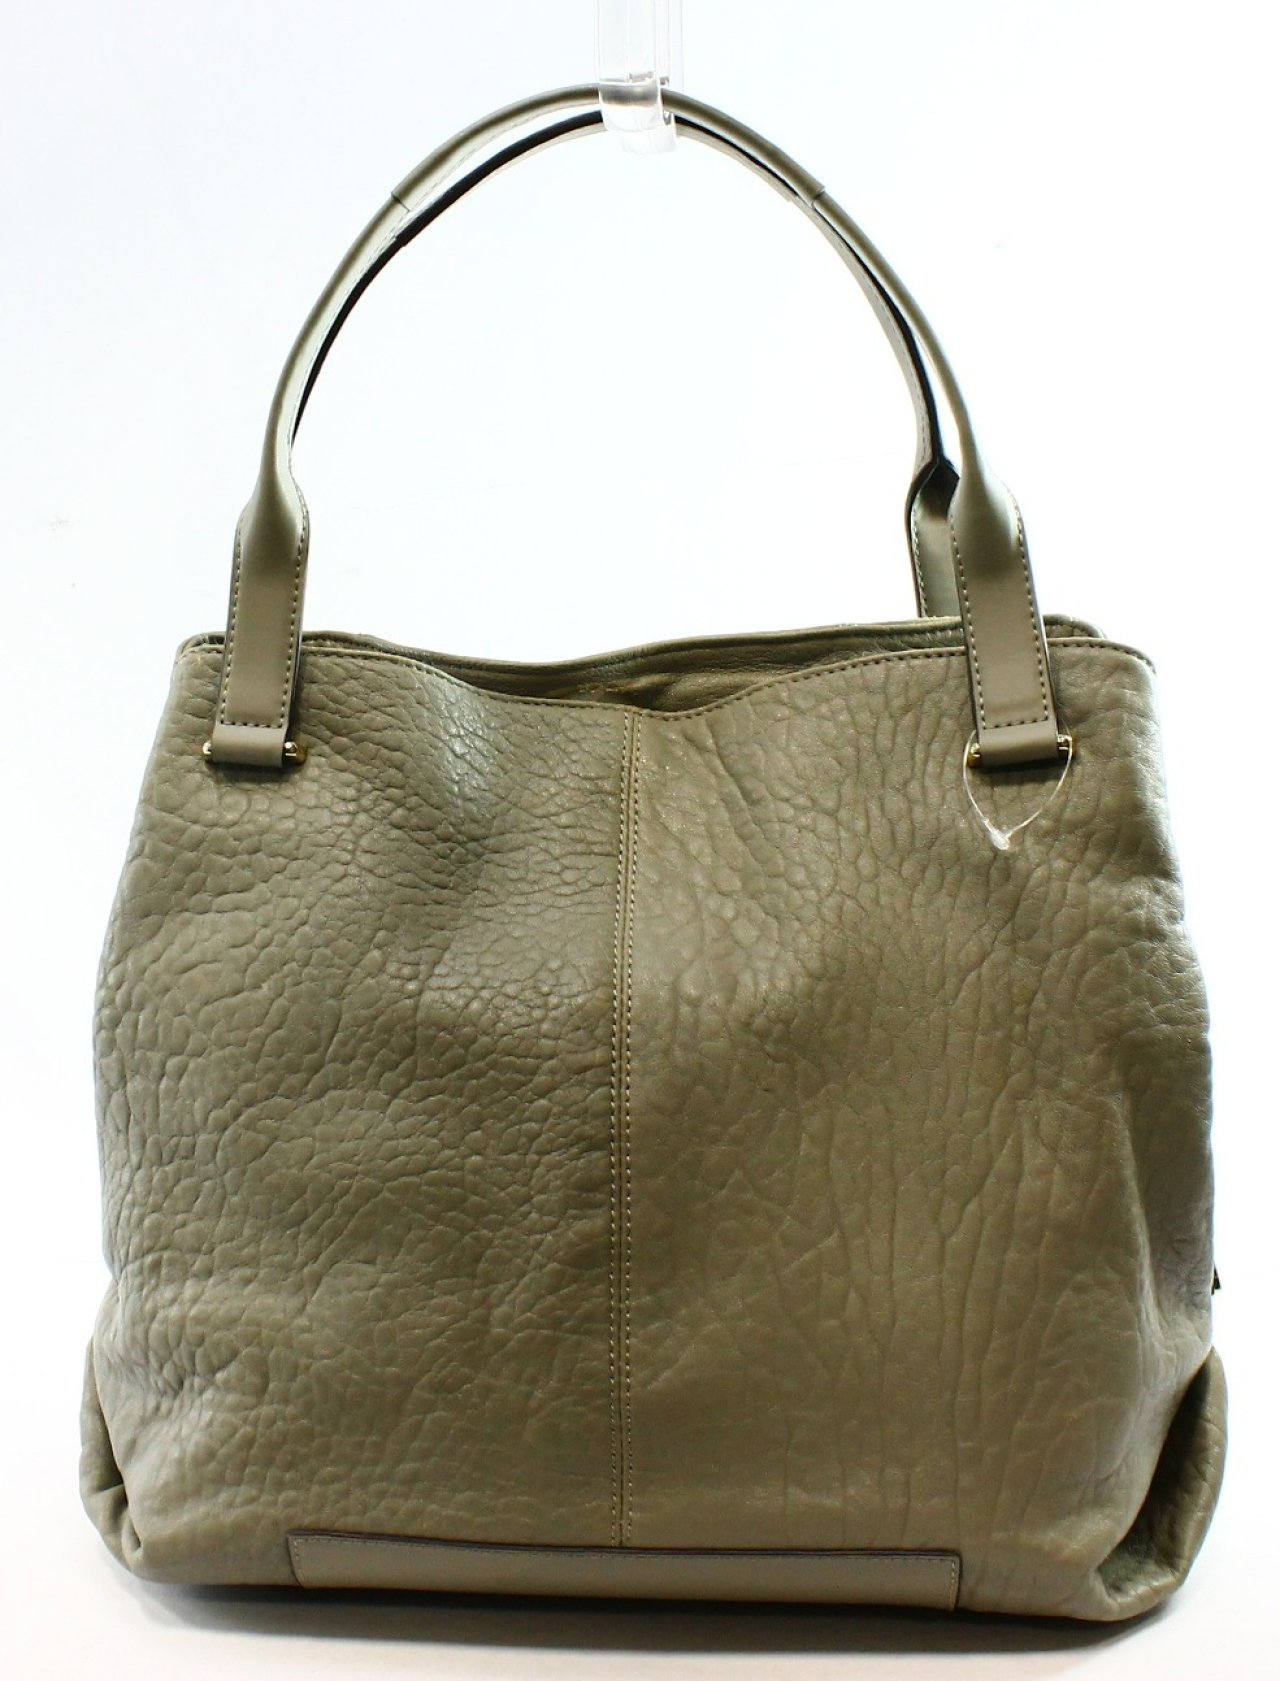 f47a74333864 Vince Camuto NEW Gray Ash Pebble Leather Maron Handbag Tote Purse $298-  #047